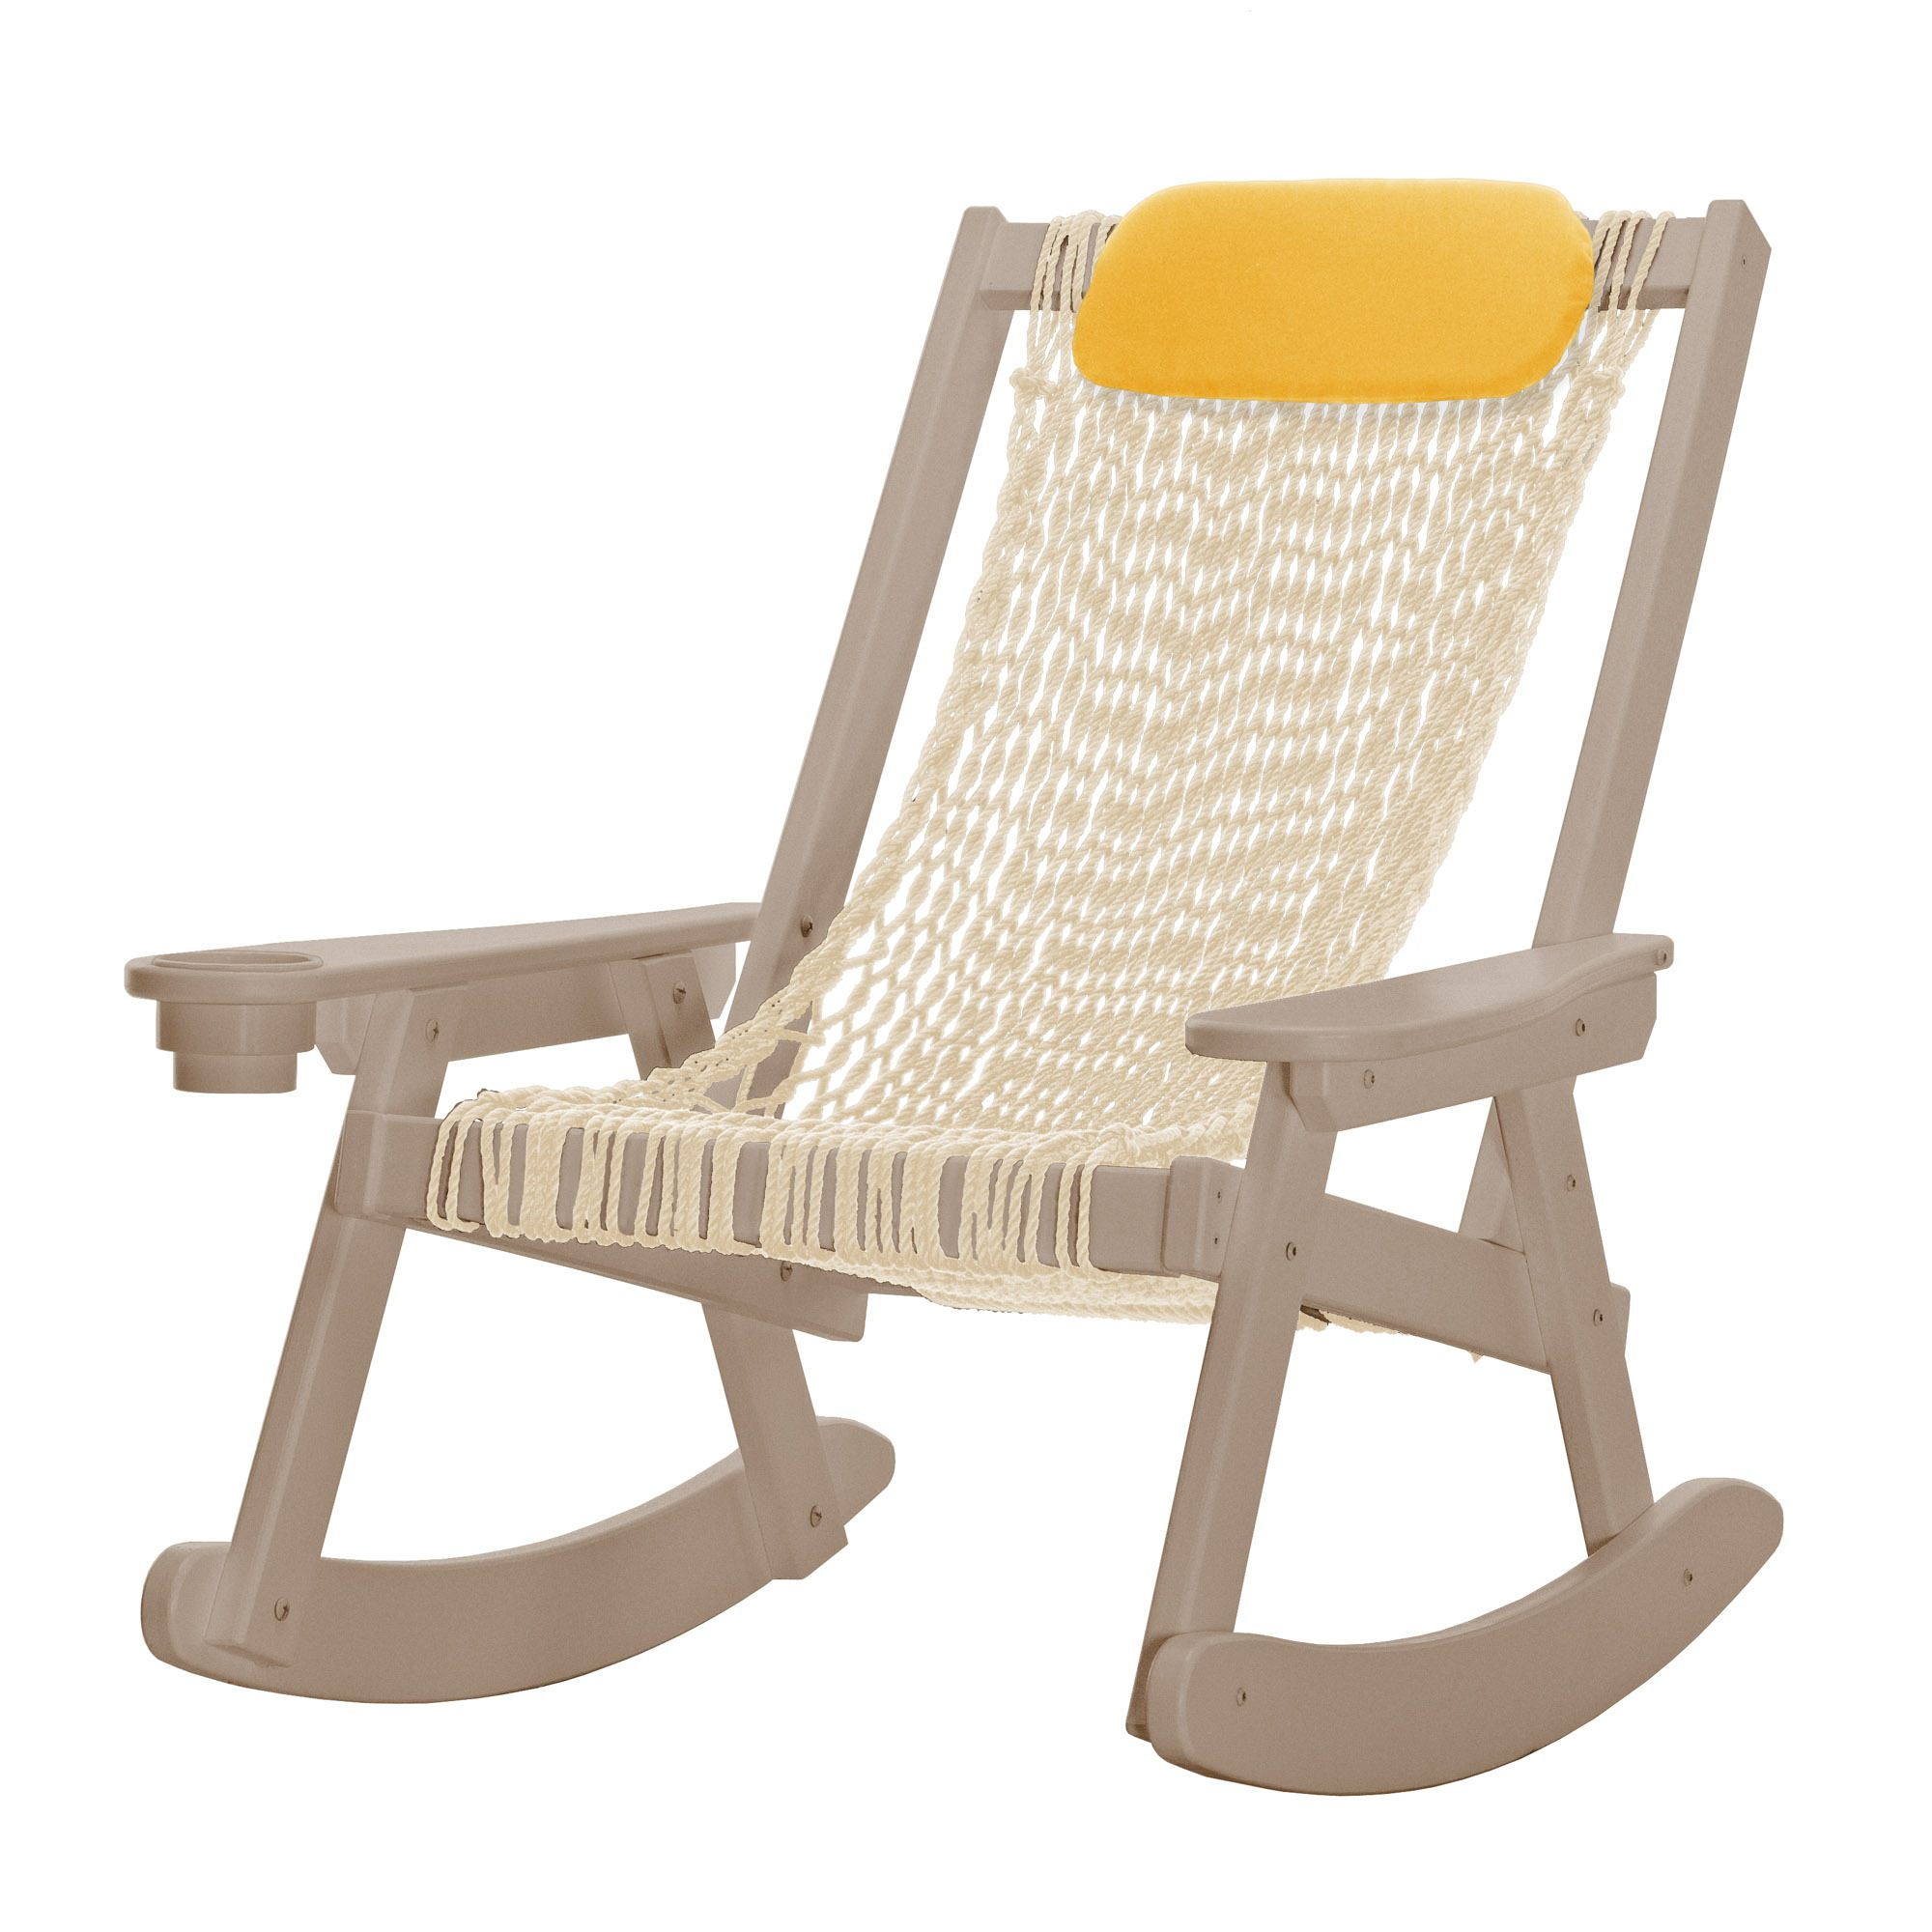 Coastal Rope Rocker Instructions